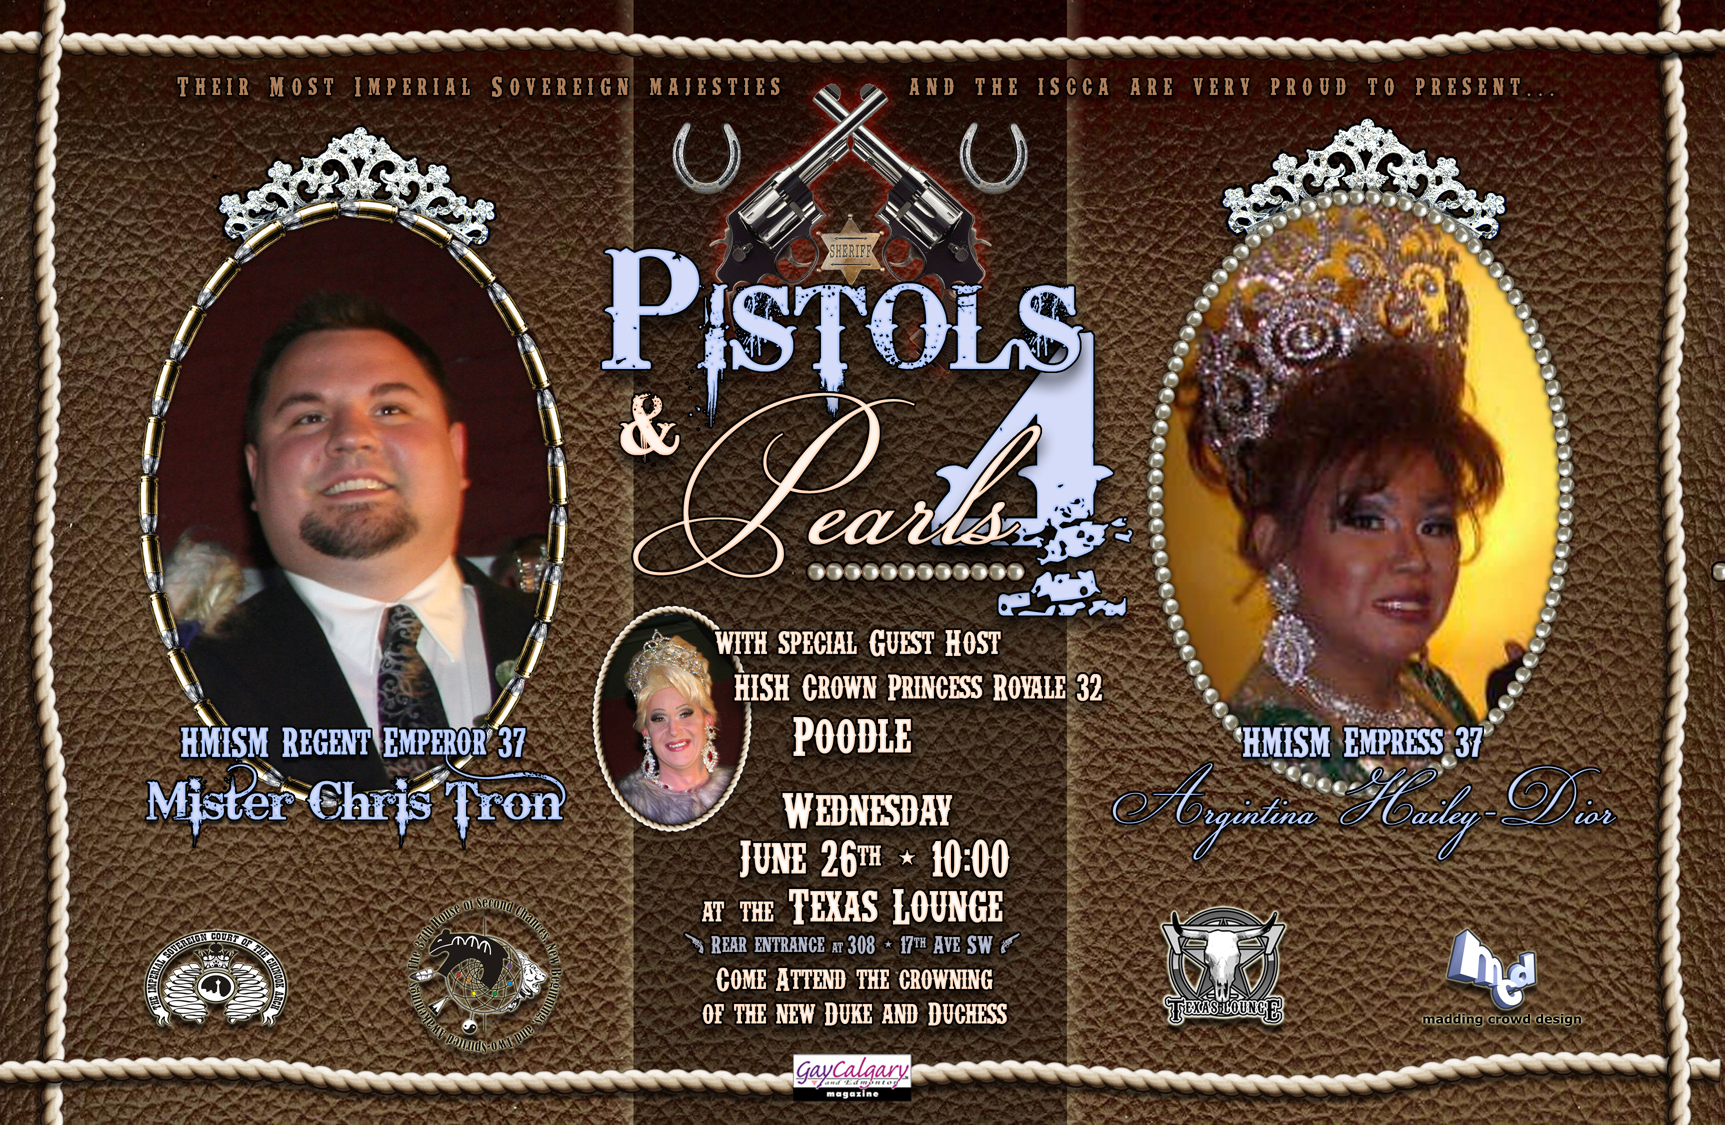 ISCCA: Pistols and Pearls (Calgary, Wed Jun 26, 10:00PM)